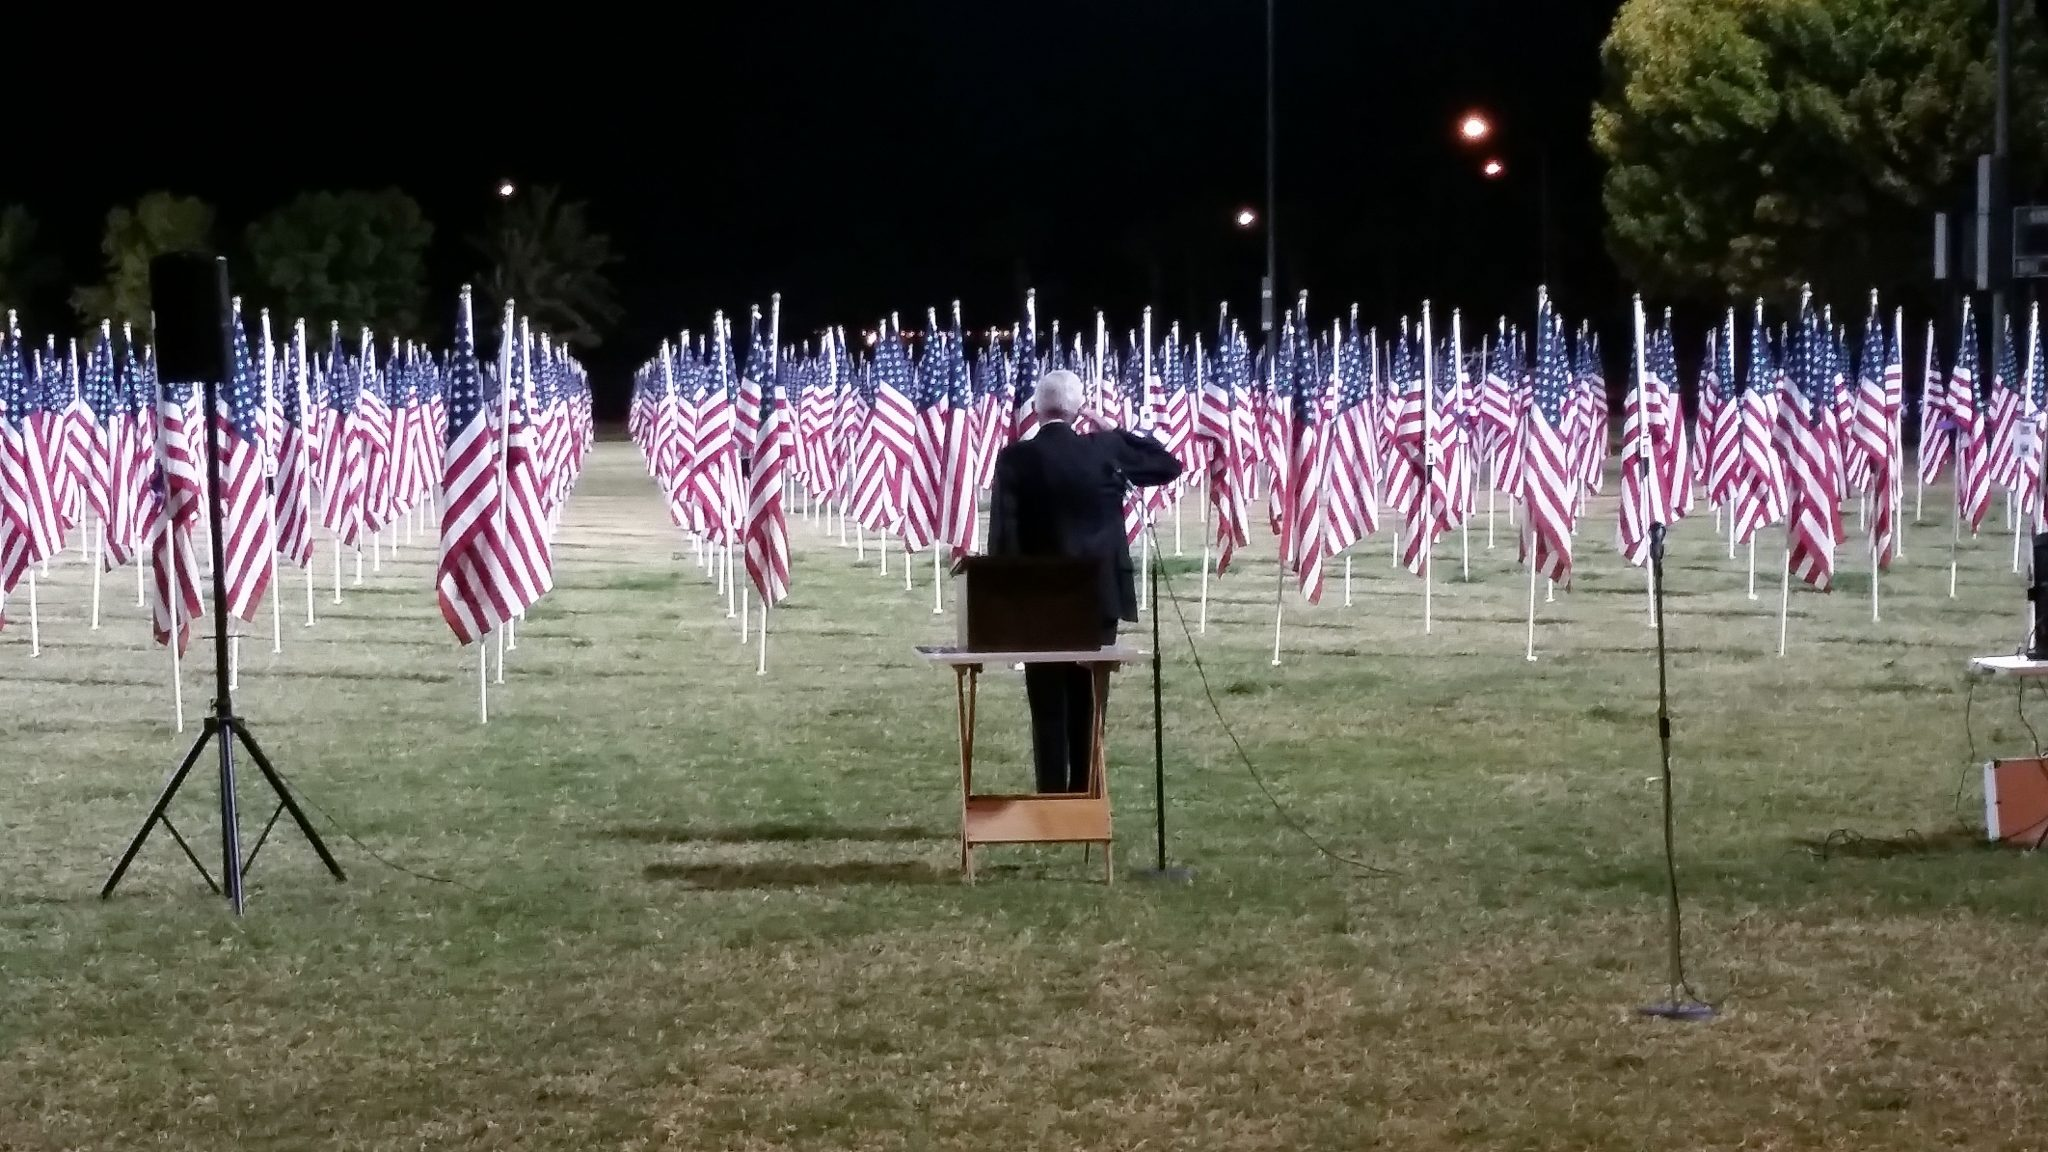 1000 Flags Ceremony Honors Las Vegas Victims